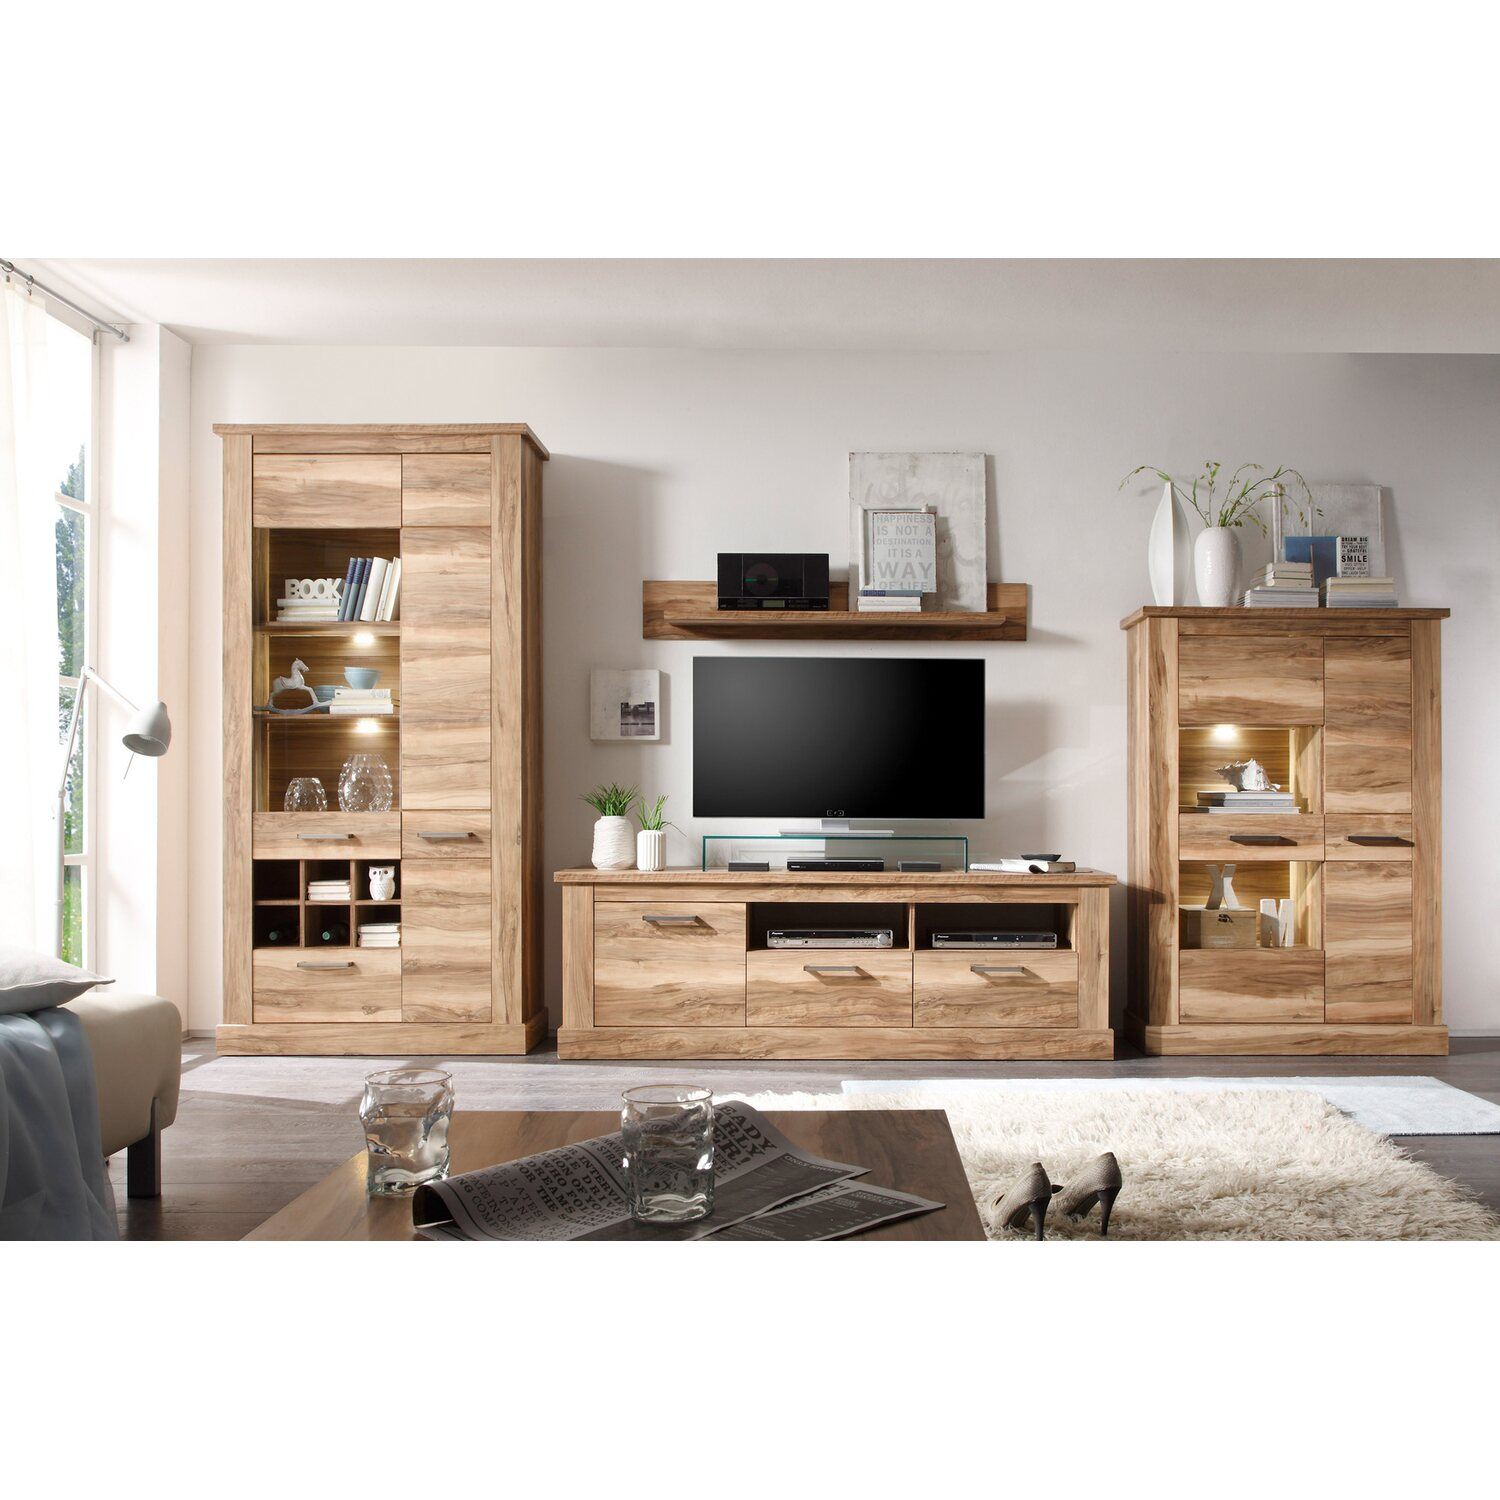 tv lowboard montreal nussbaum satin nachbildung 186 x 61 x 52 cm kaufen bei obi. Black Bedroom Furniture Sets. Home Design Ideas